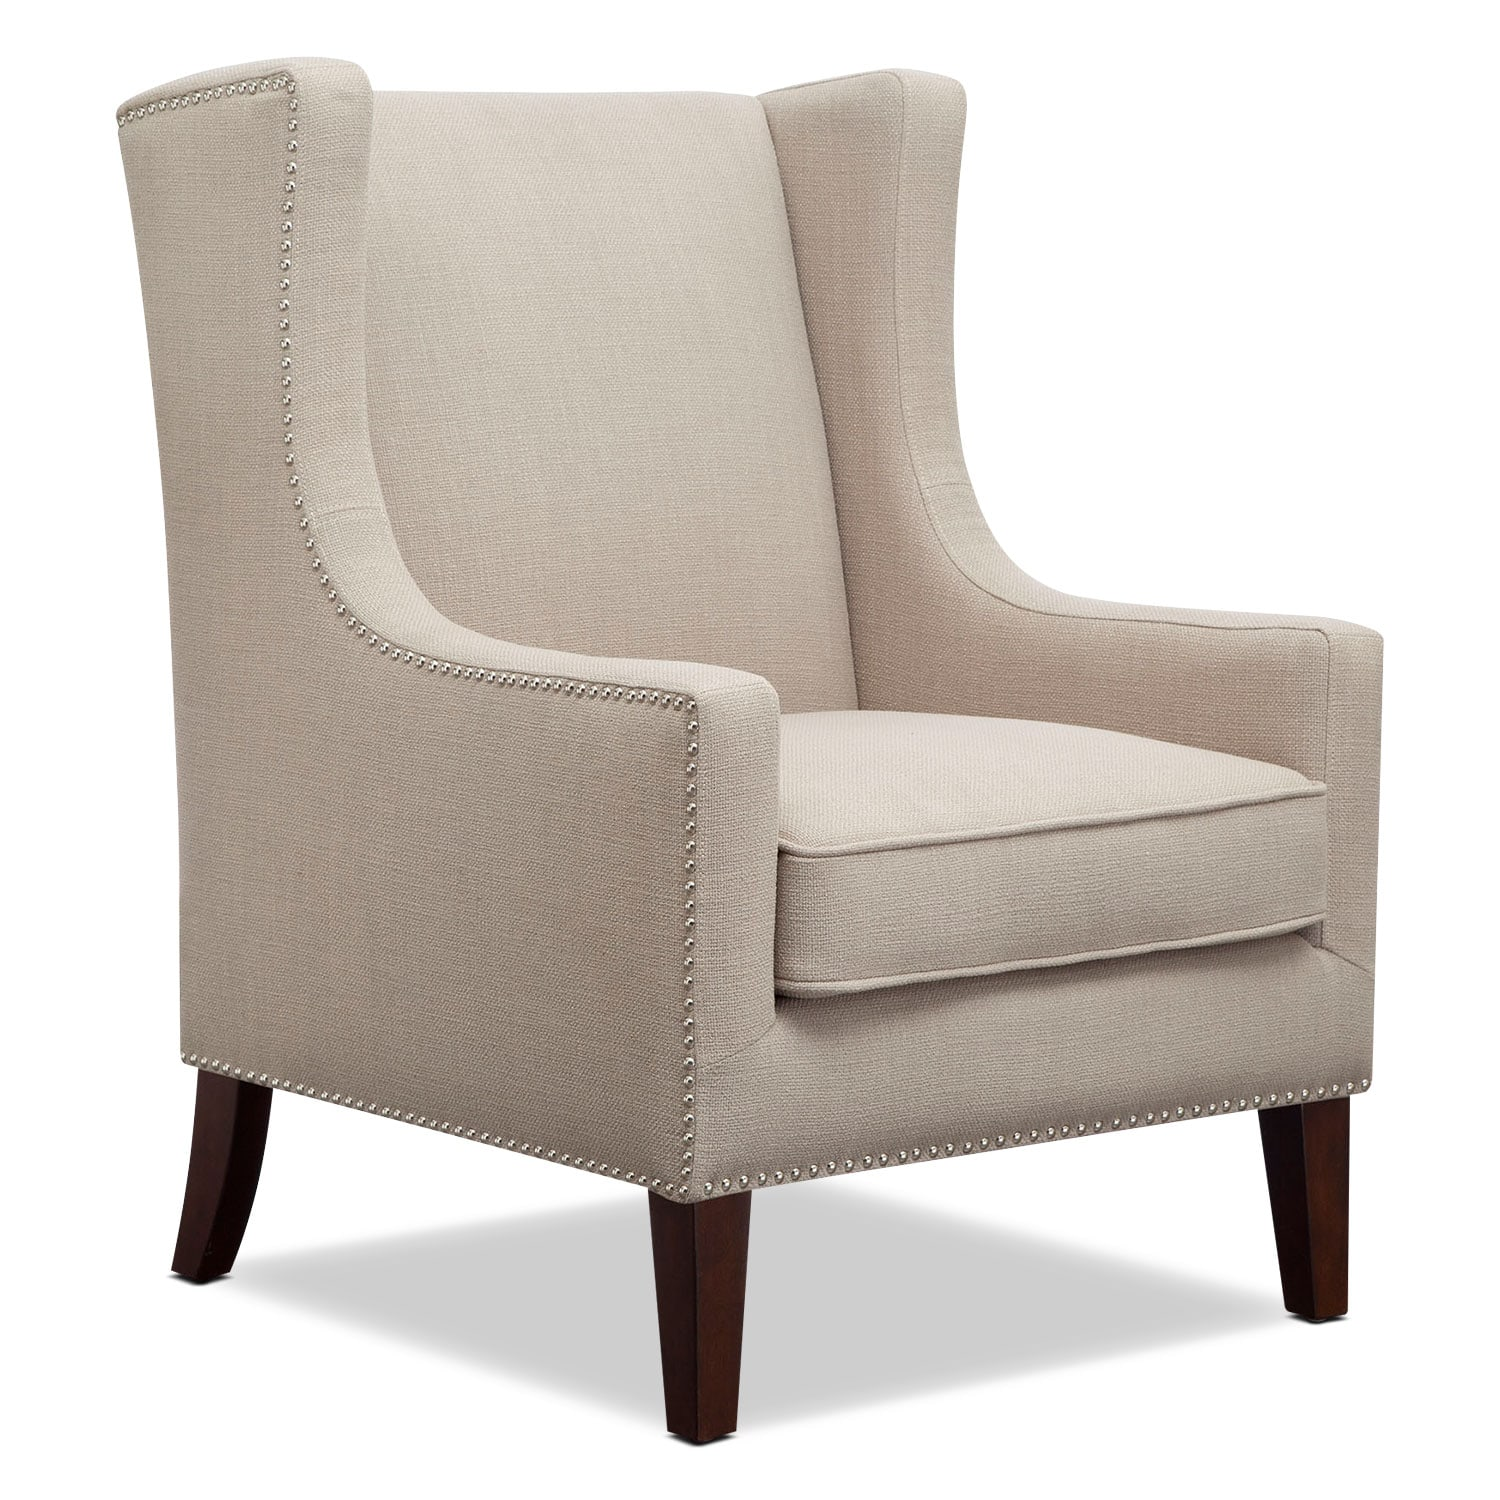 mesmerizing living room accent chair | Blythe Accent Chair - Linen | Value City Furniture and ...